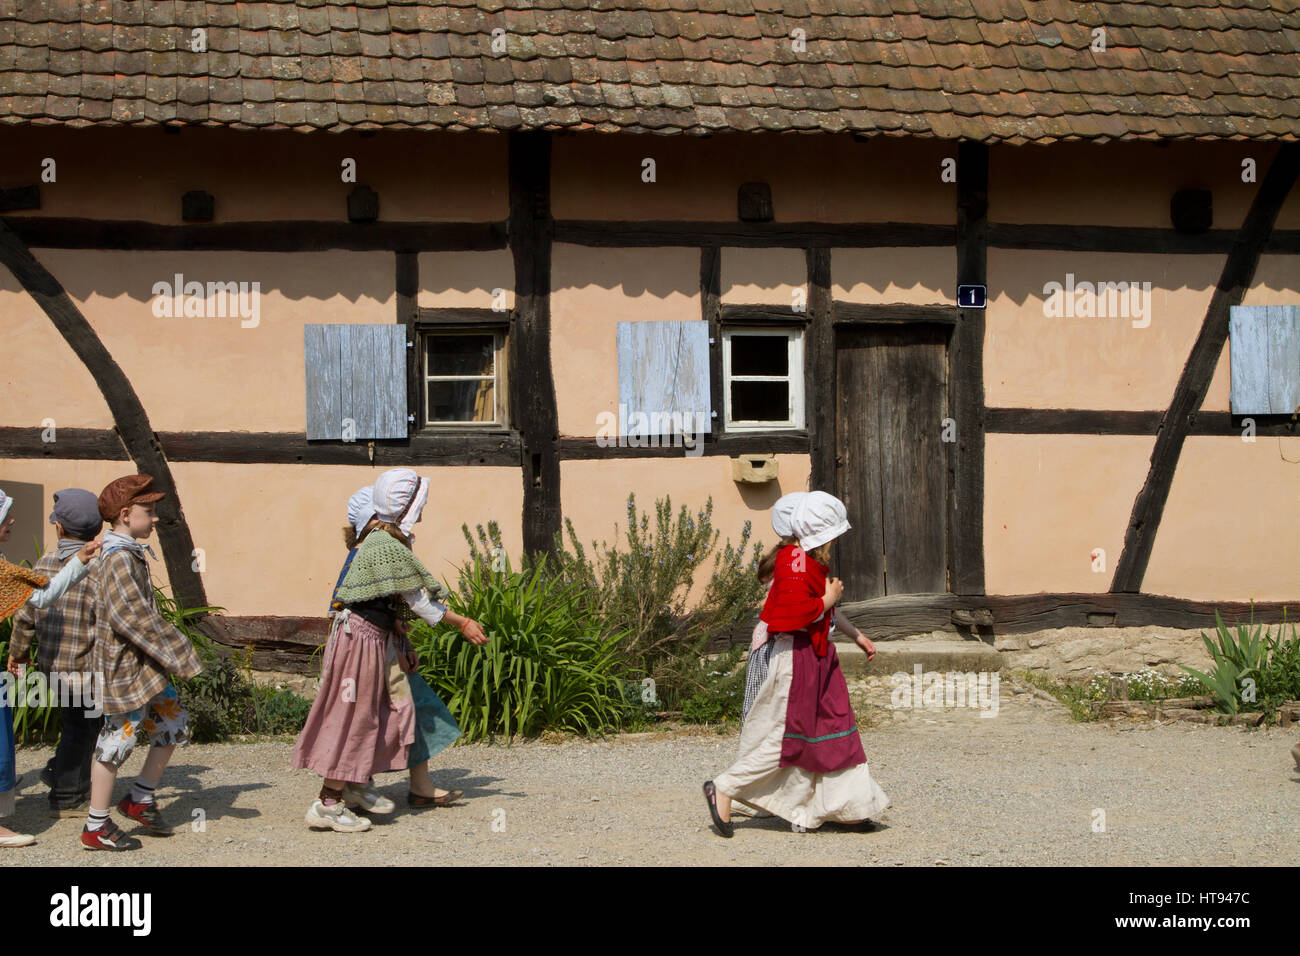 The Écomusée d'Alsace is the largest living open-air museum in France and shows an Alsatian village from the early Stock Photo